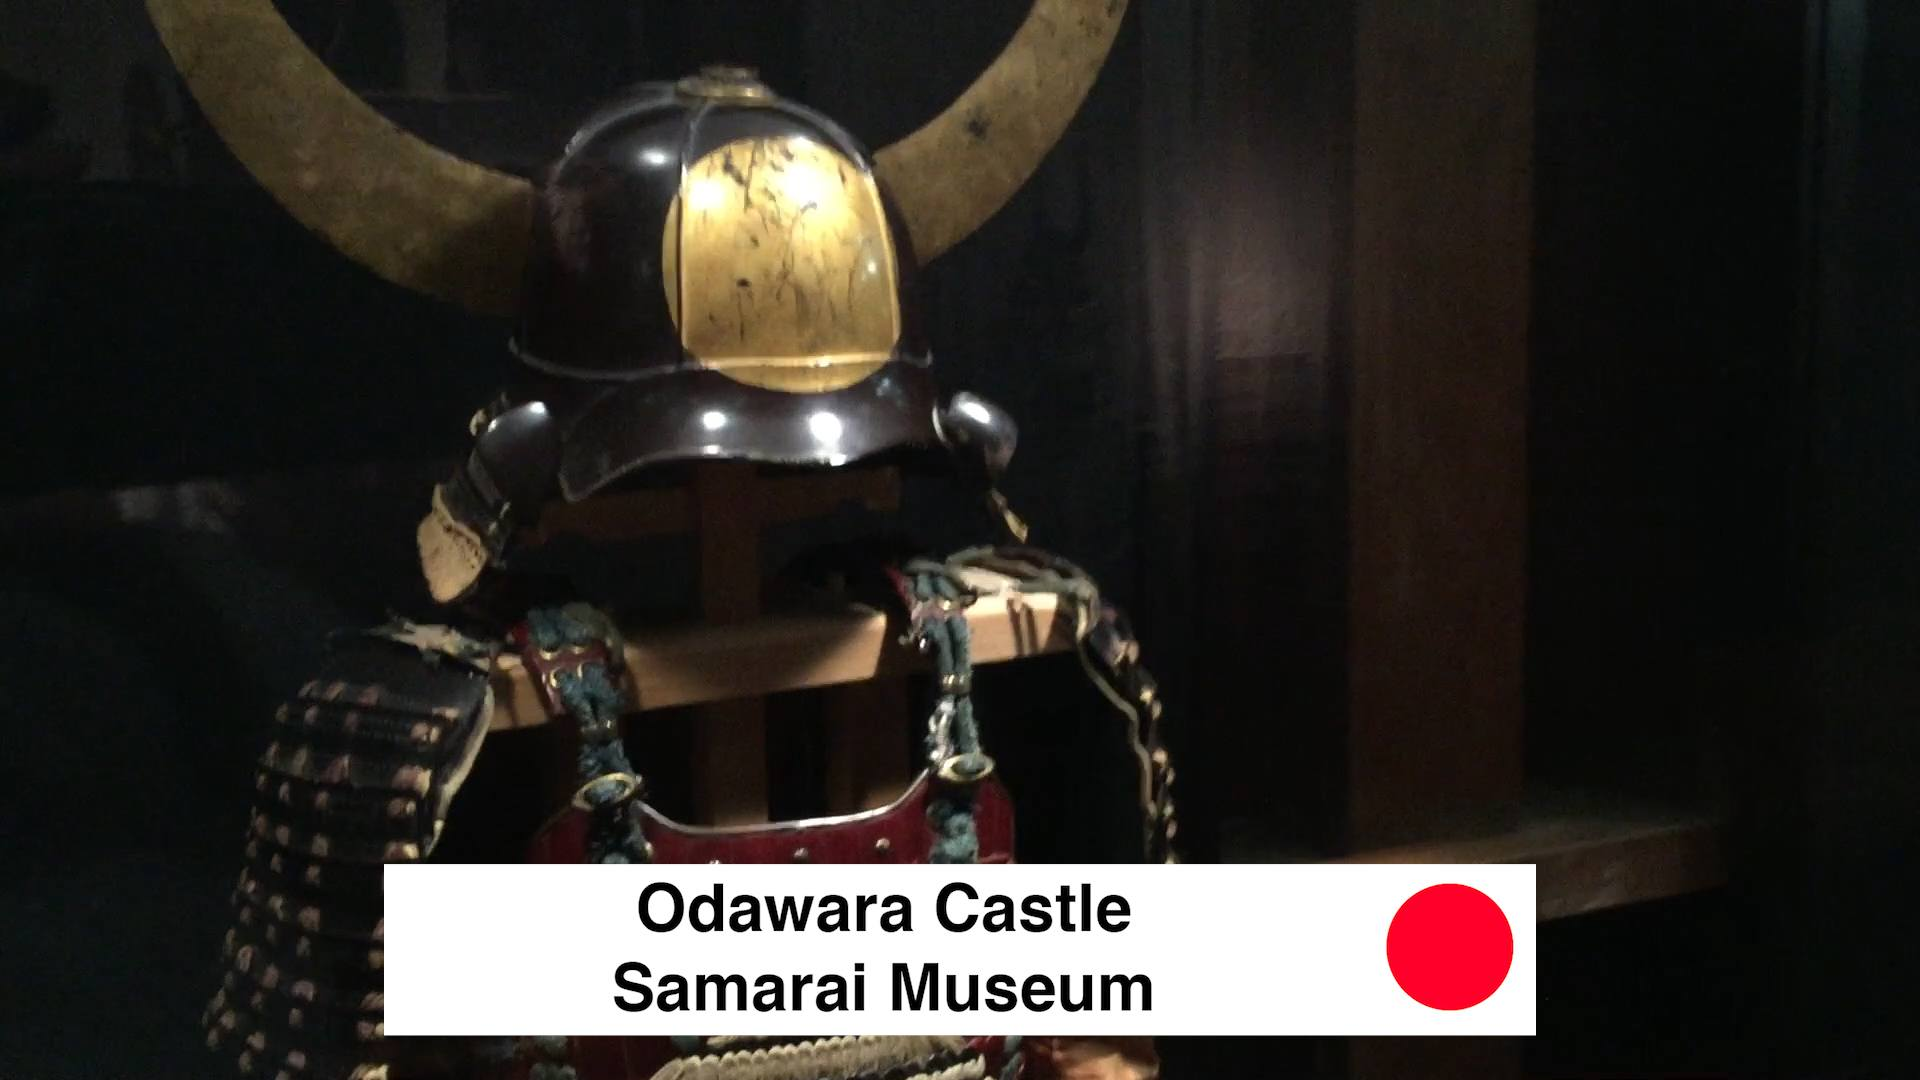 Odawara Castle Samurai Museum - Odawara Castle Japan Guide Review Video - 9 Reasons To See Odawara Castle Kanagawa Japan 🇯🇵 🏯 🌸